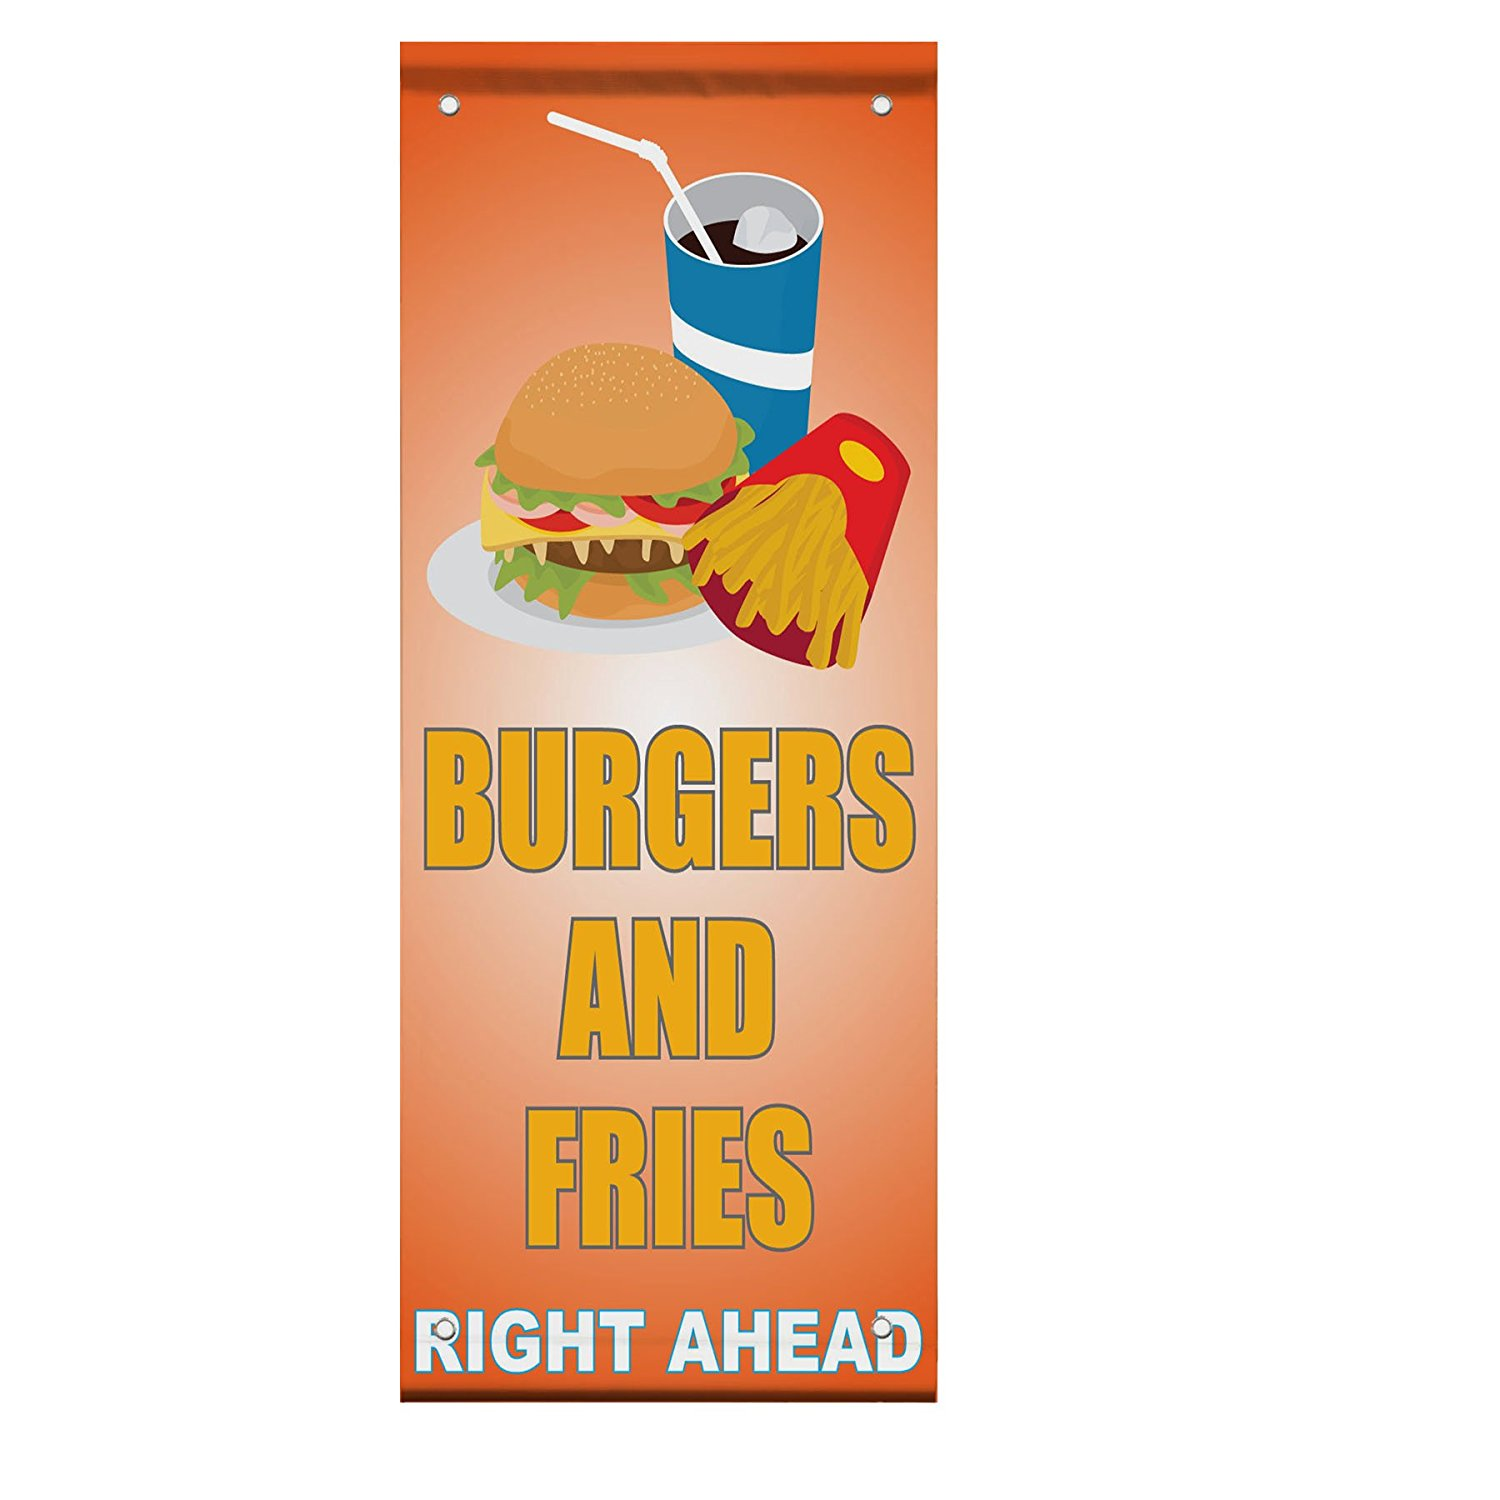 Burger And Fries Right Ahead Light Orange Double Sided Vertical Pole Banner Sign 36 in x 48 in w/ Wall Bracket